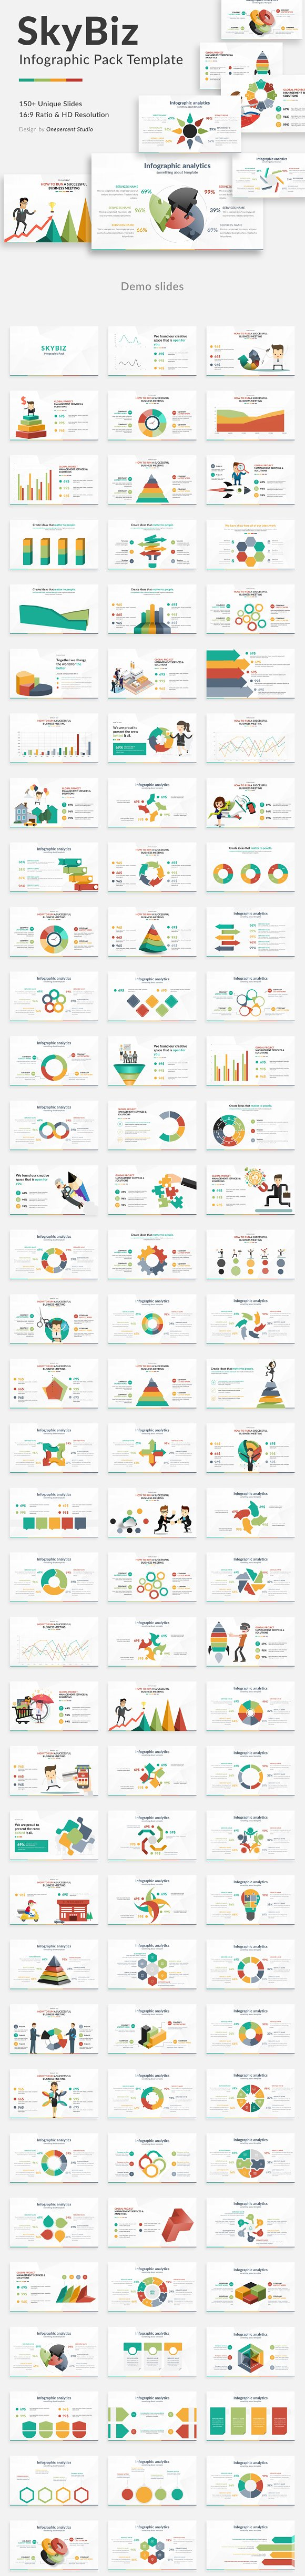 Skybiz Infographic Pack Powerpoint